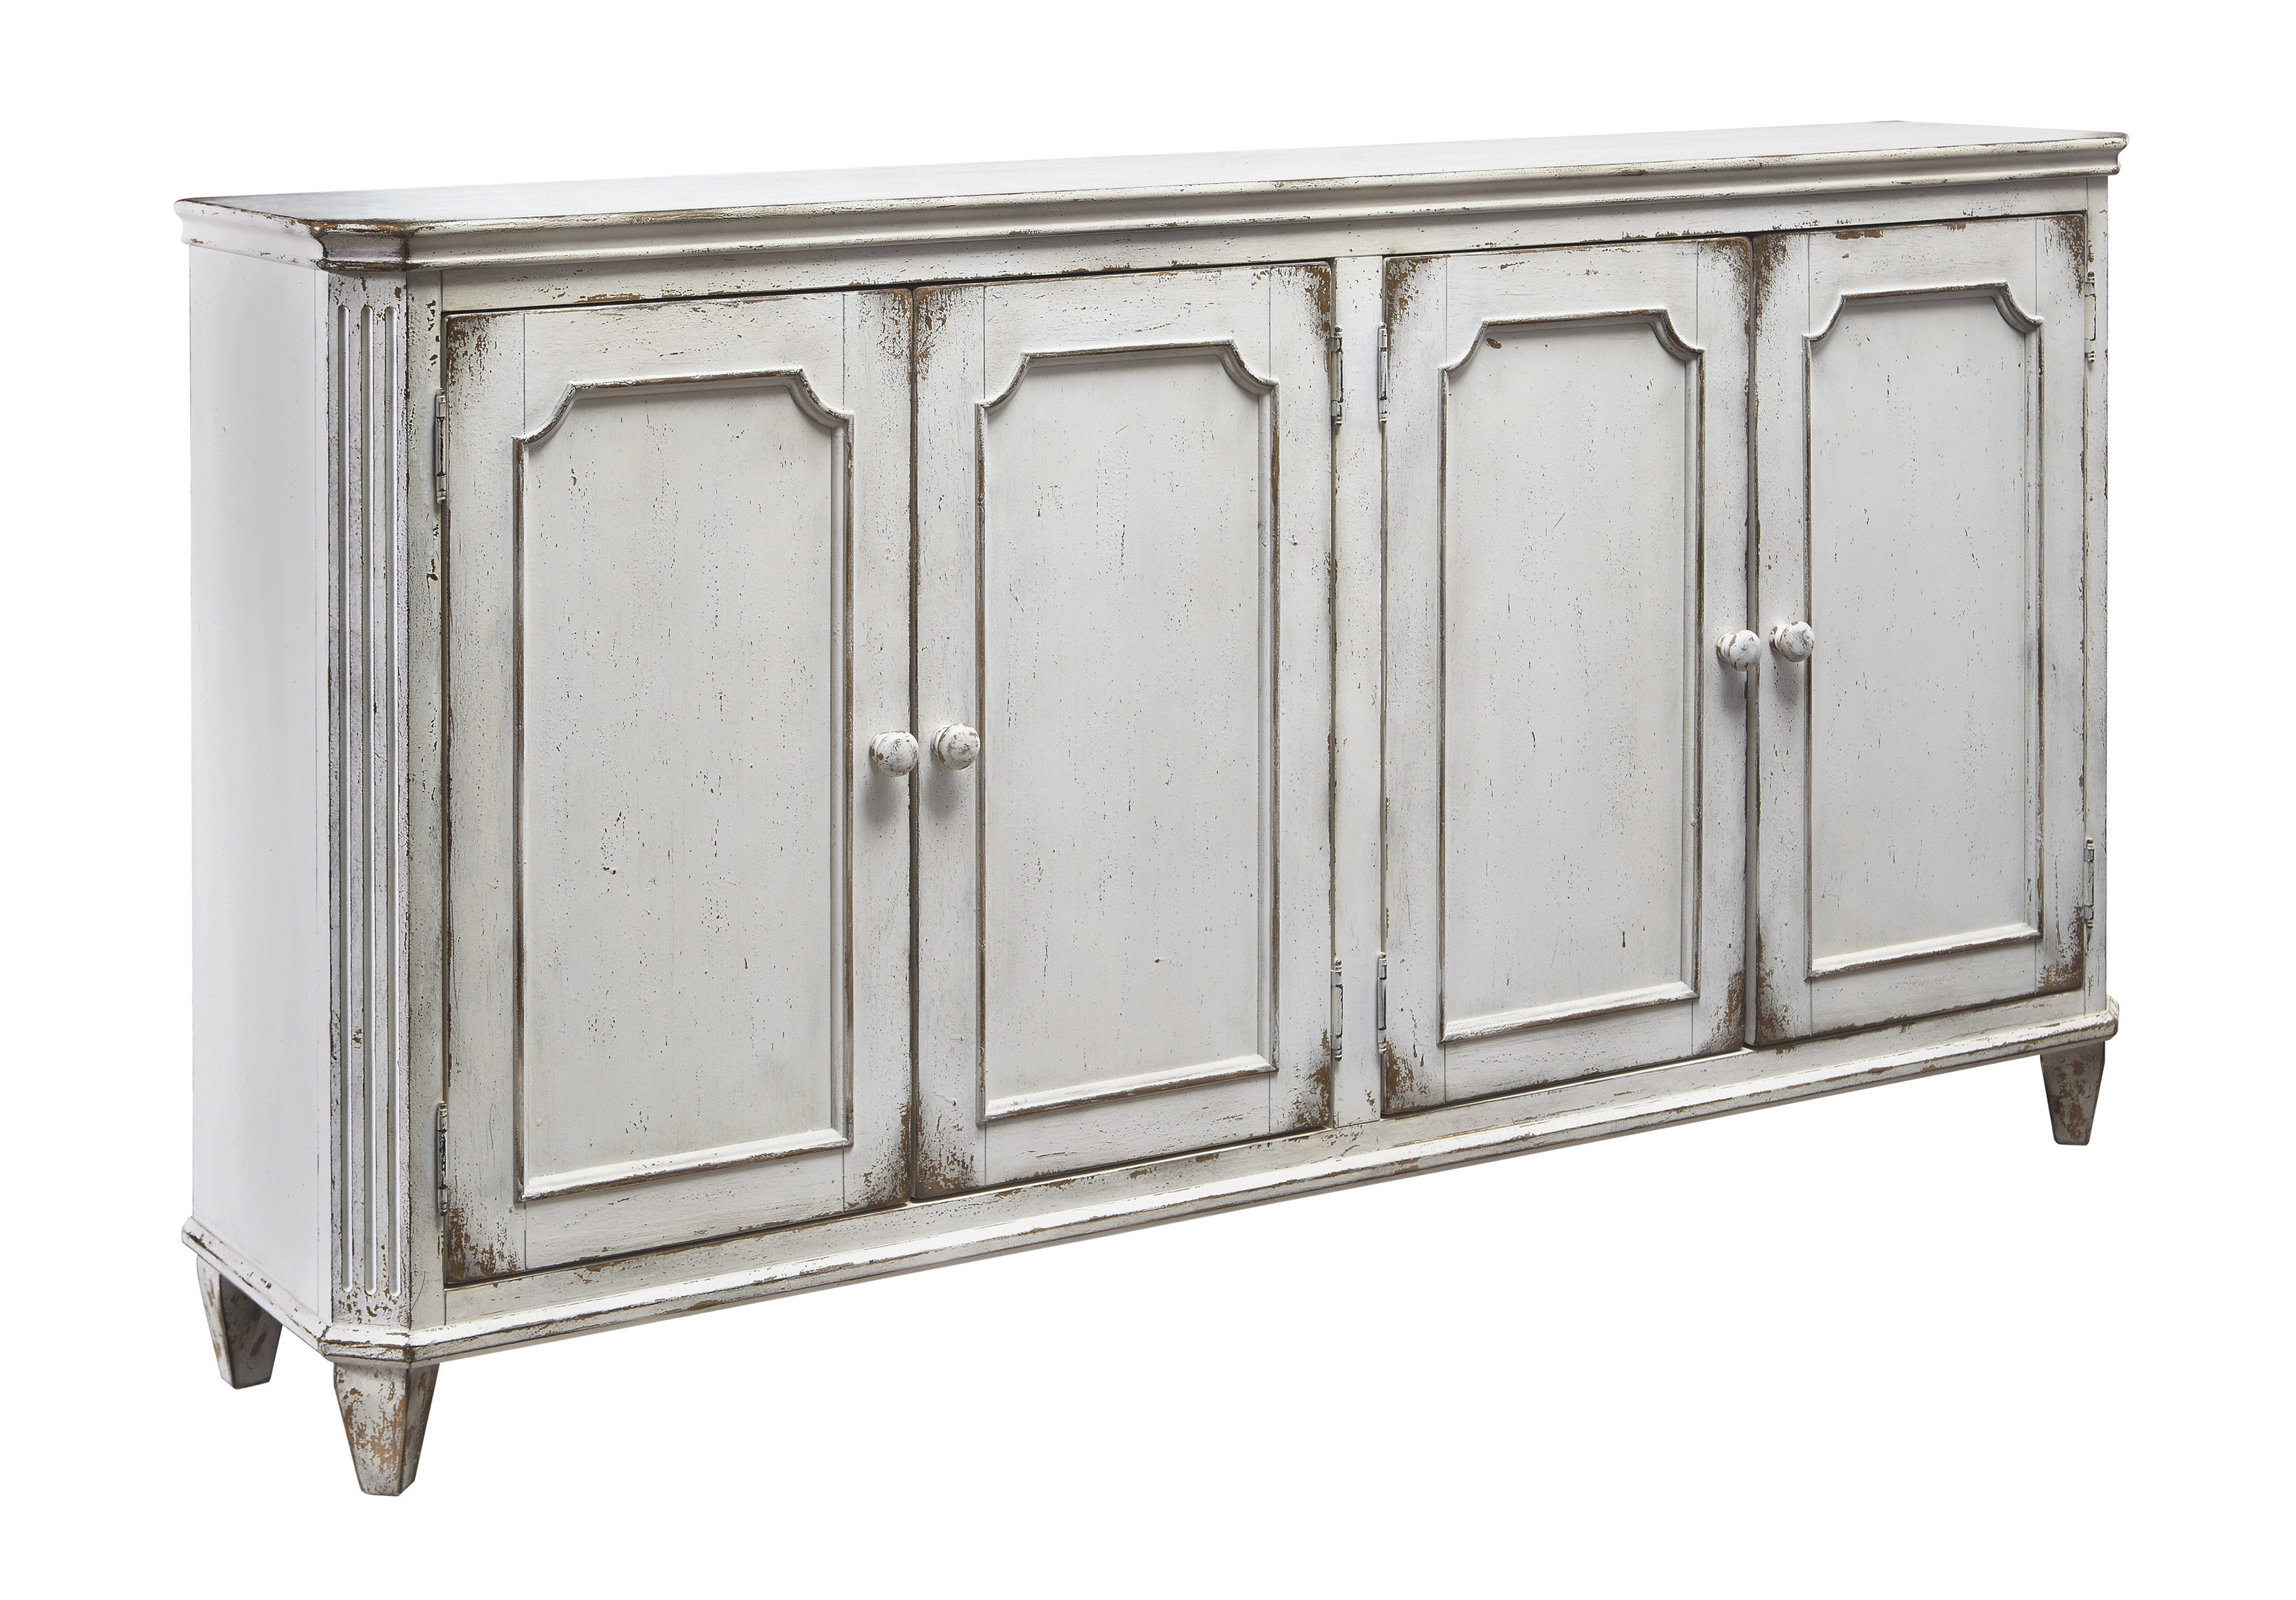 36 Inch Sideboard | Wayfair For Colborne Sideboards (View 1 of 30)